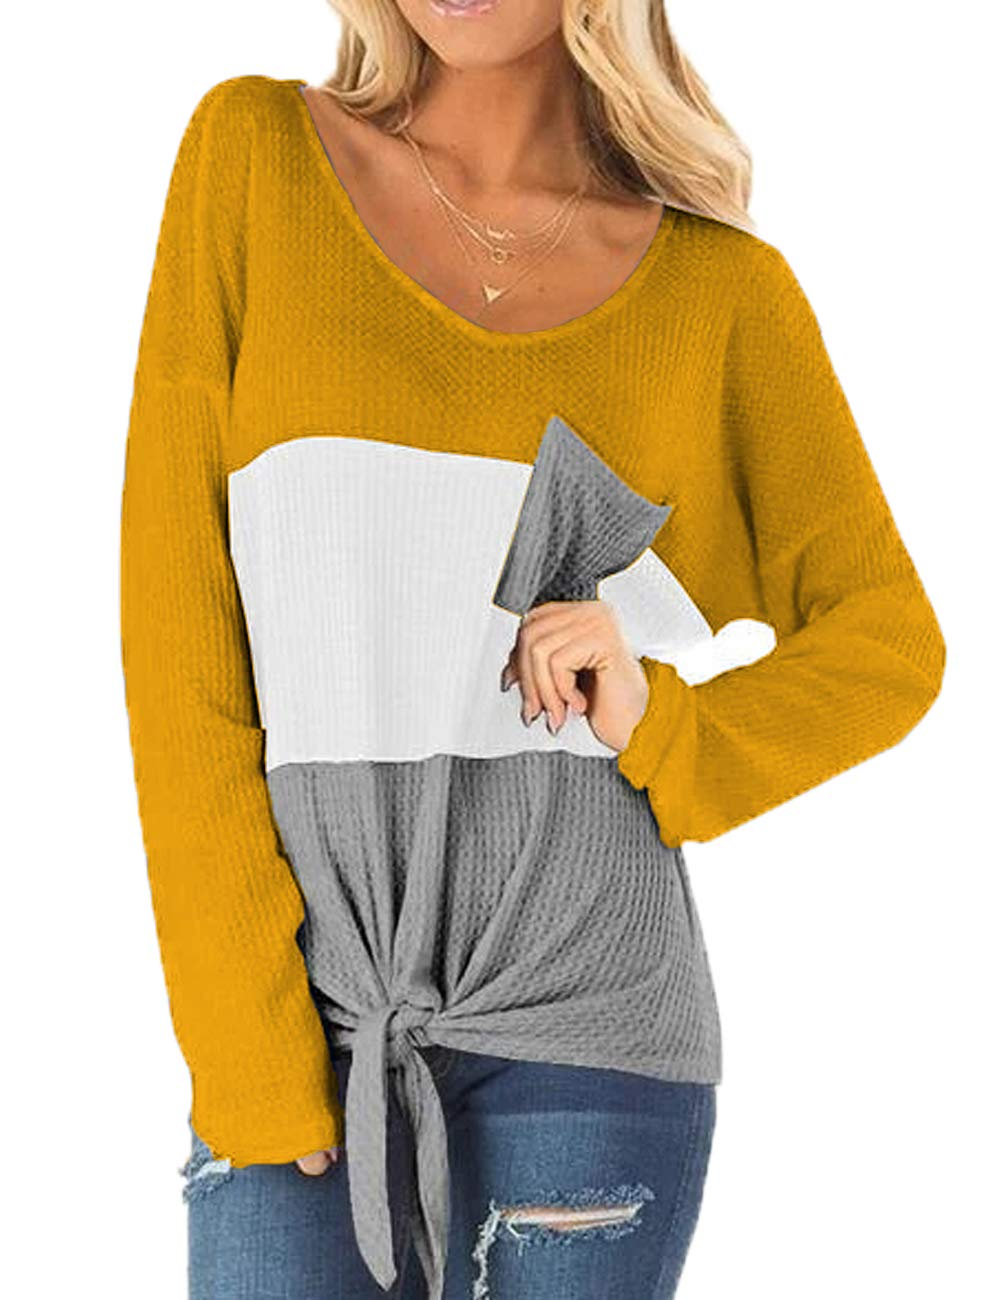 Ido4U Womens Waffle Knit Tunic Blouses Color Block T Shirts Tie Knot Casual Long Sleeve Henley Tops (L,Yellow)